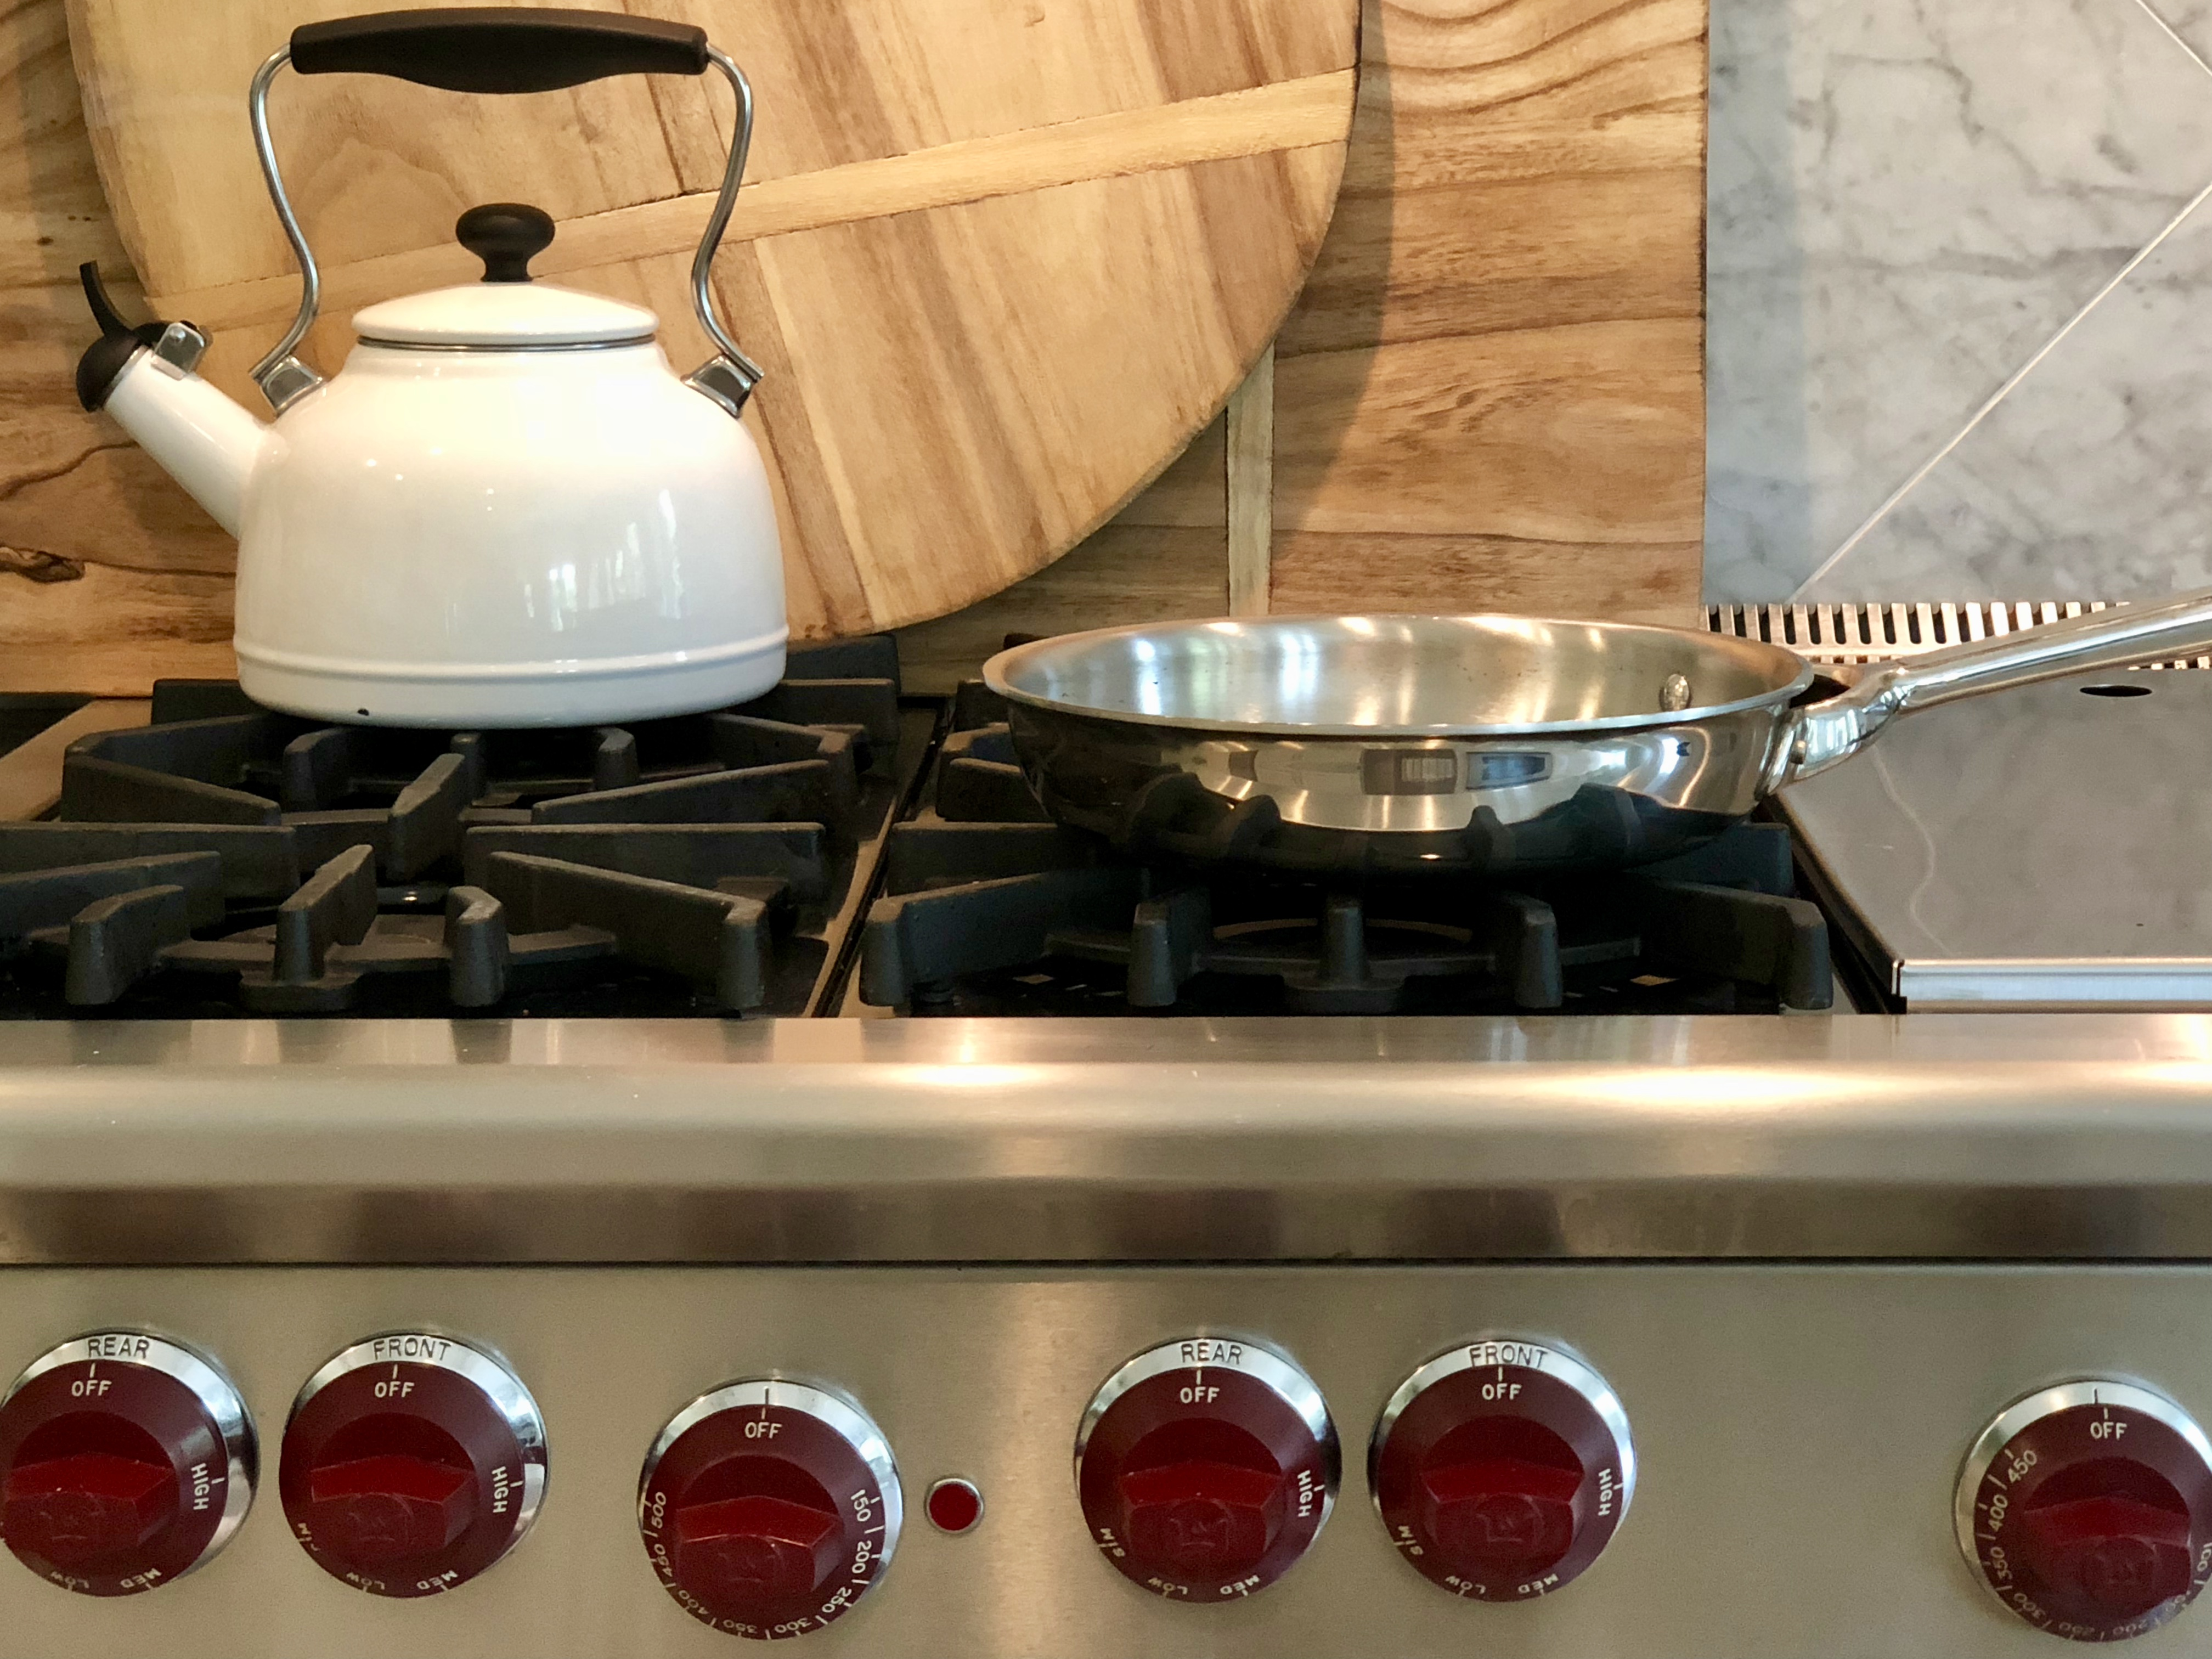 How To Clean Grease Off Stainless Steel